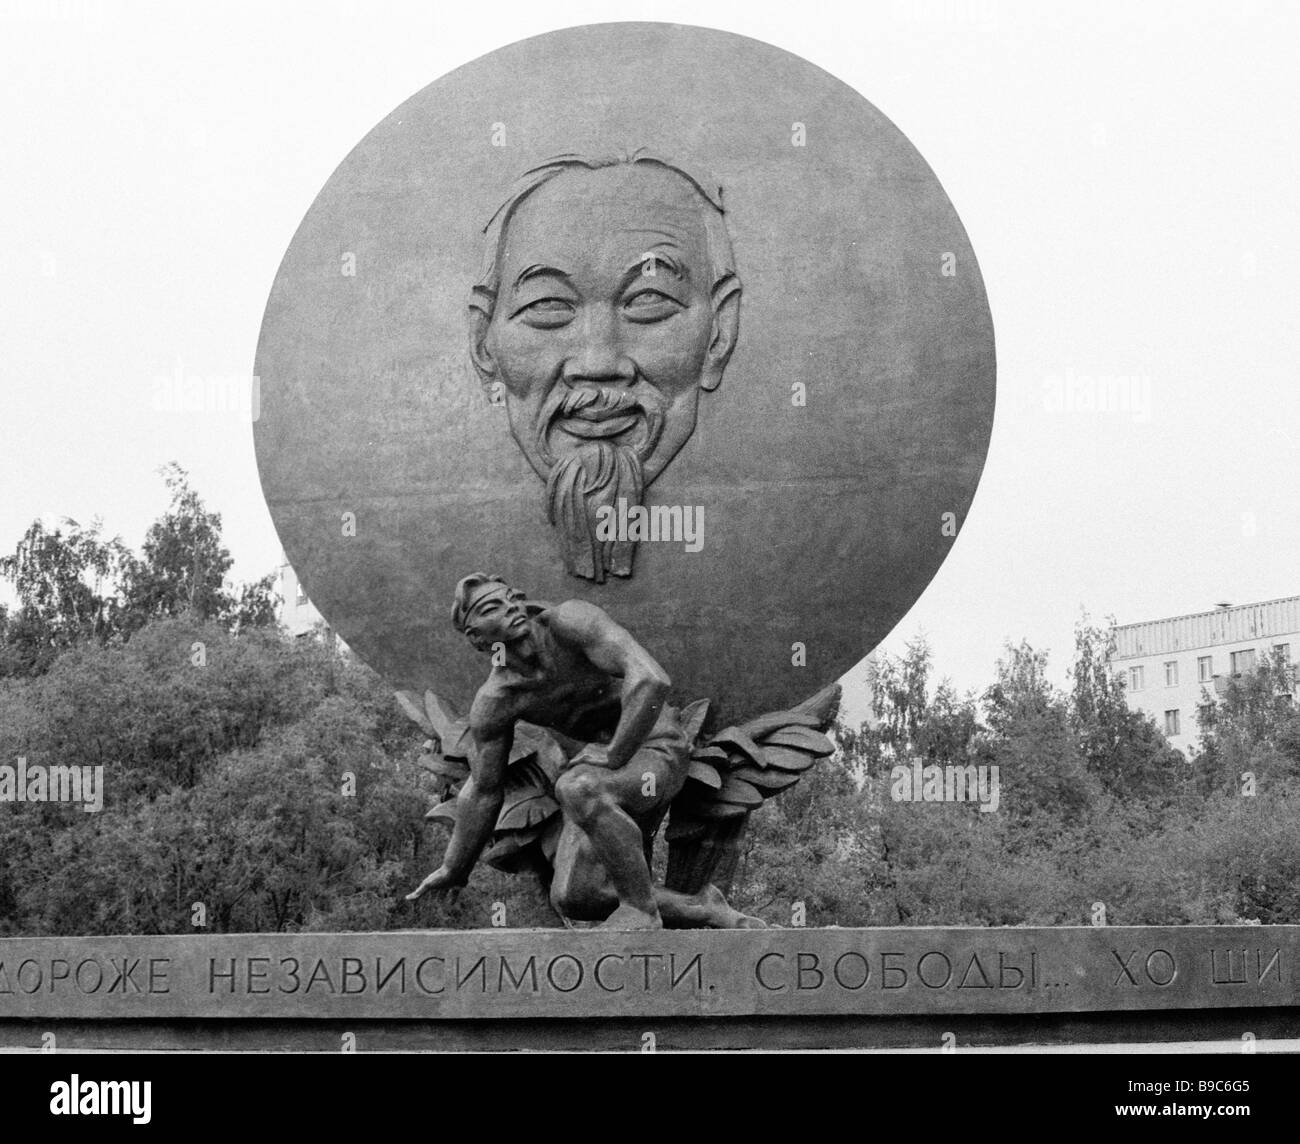 Memorial to Vietnamese political leader Ho Chi Minh - Stock Image